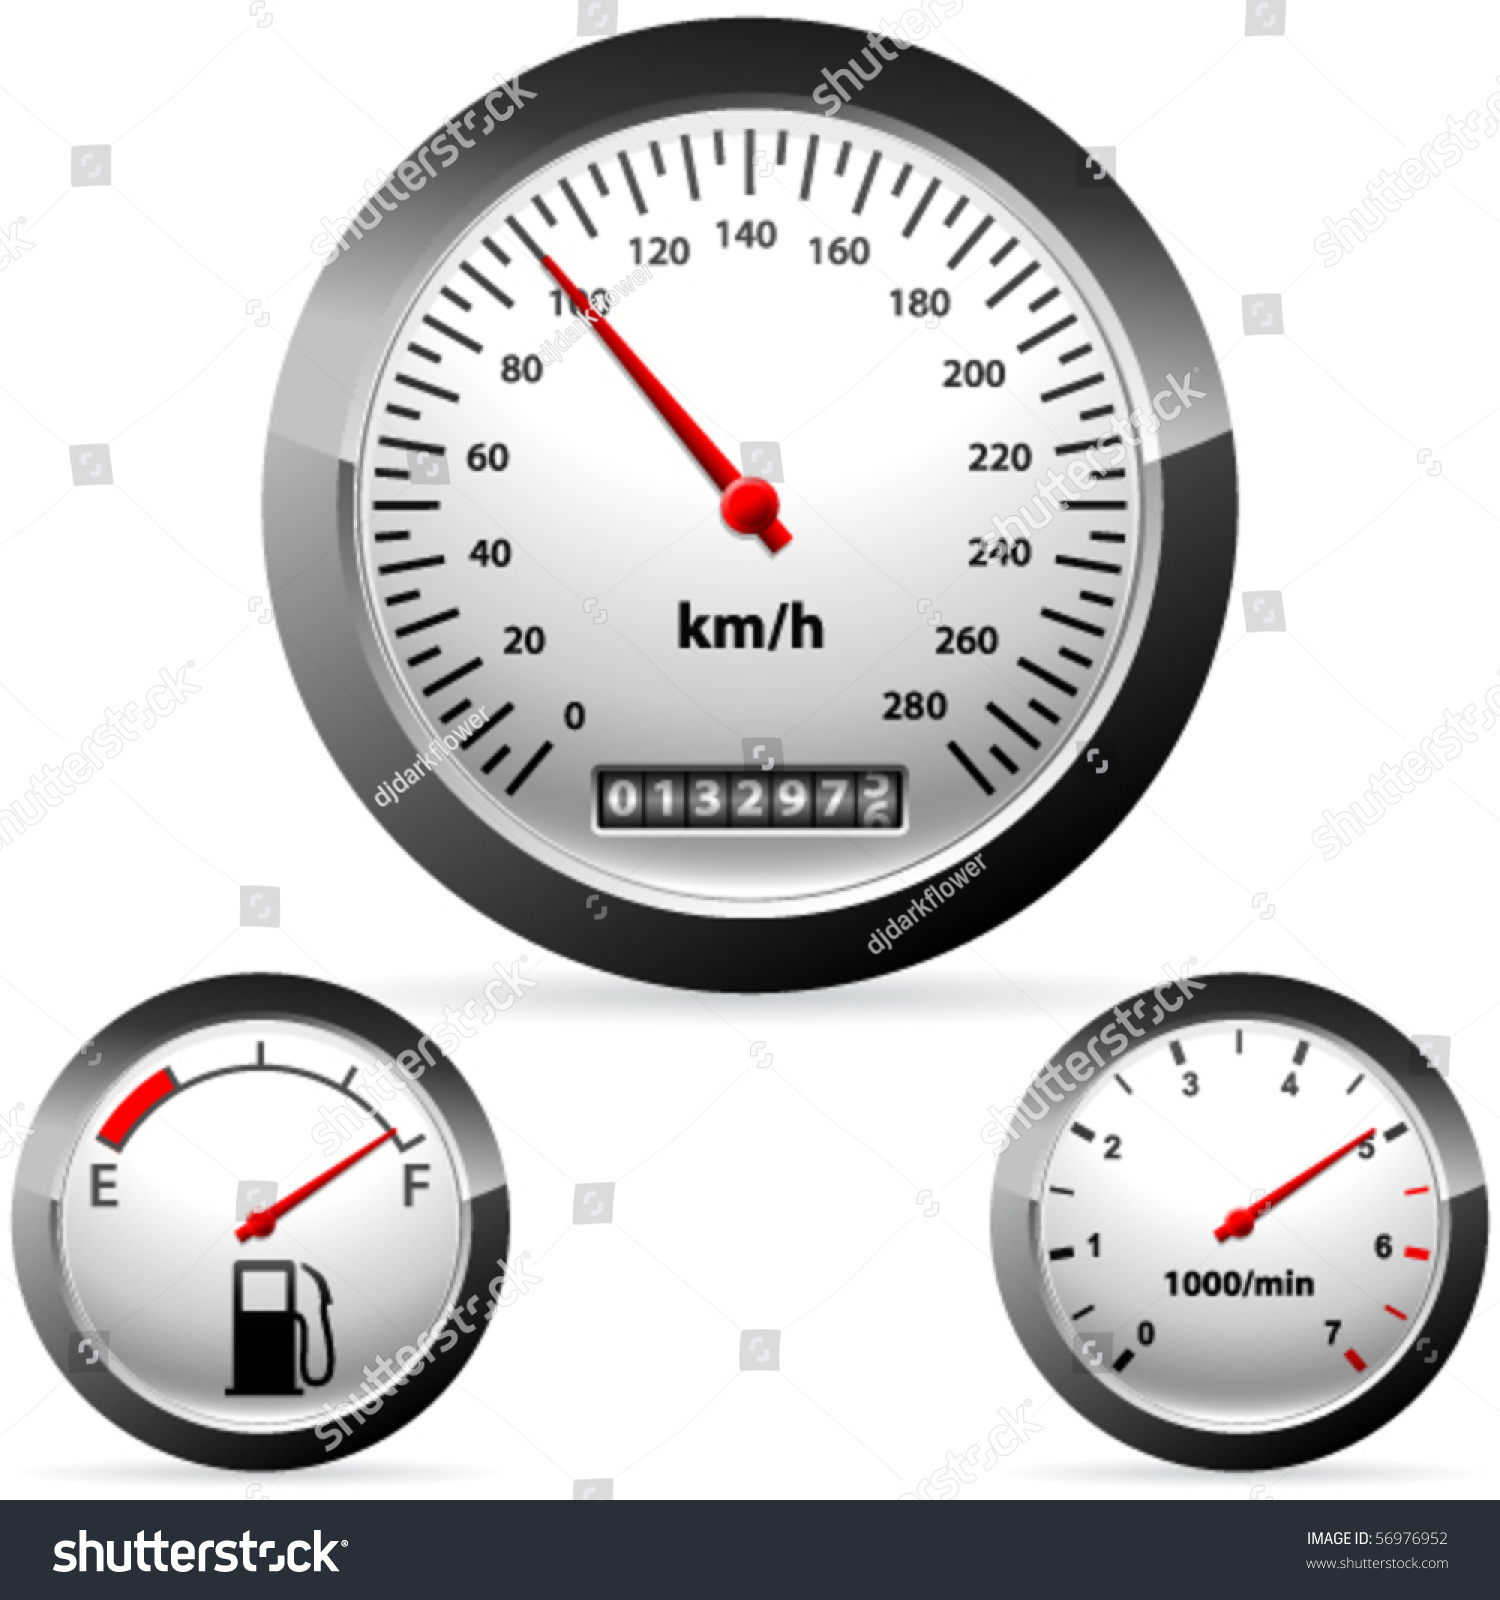 Stock Vector Car Speedometer And Dashboard together with Vulcan S additionally Food Miles as well Bullet Thunderbird 500 Price Features Mileage Per Litre further 1103115 2017 Toyota Prius Prime Plug In Hybrid Video Preview. on cartoon fuel mileage